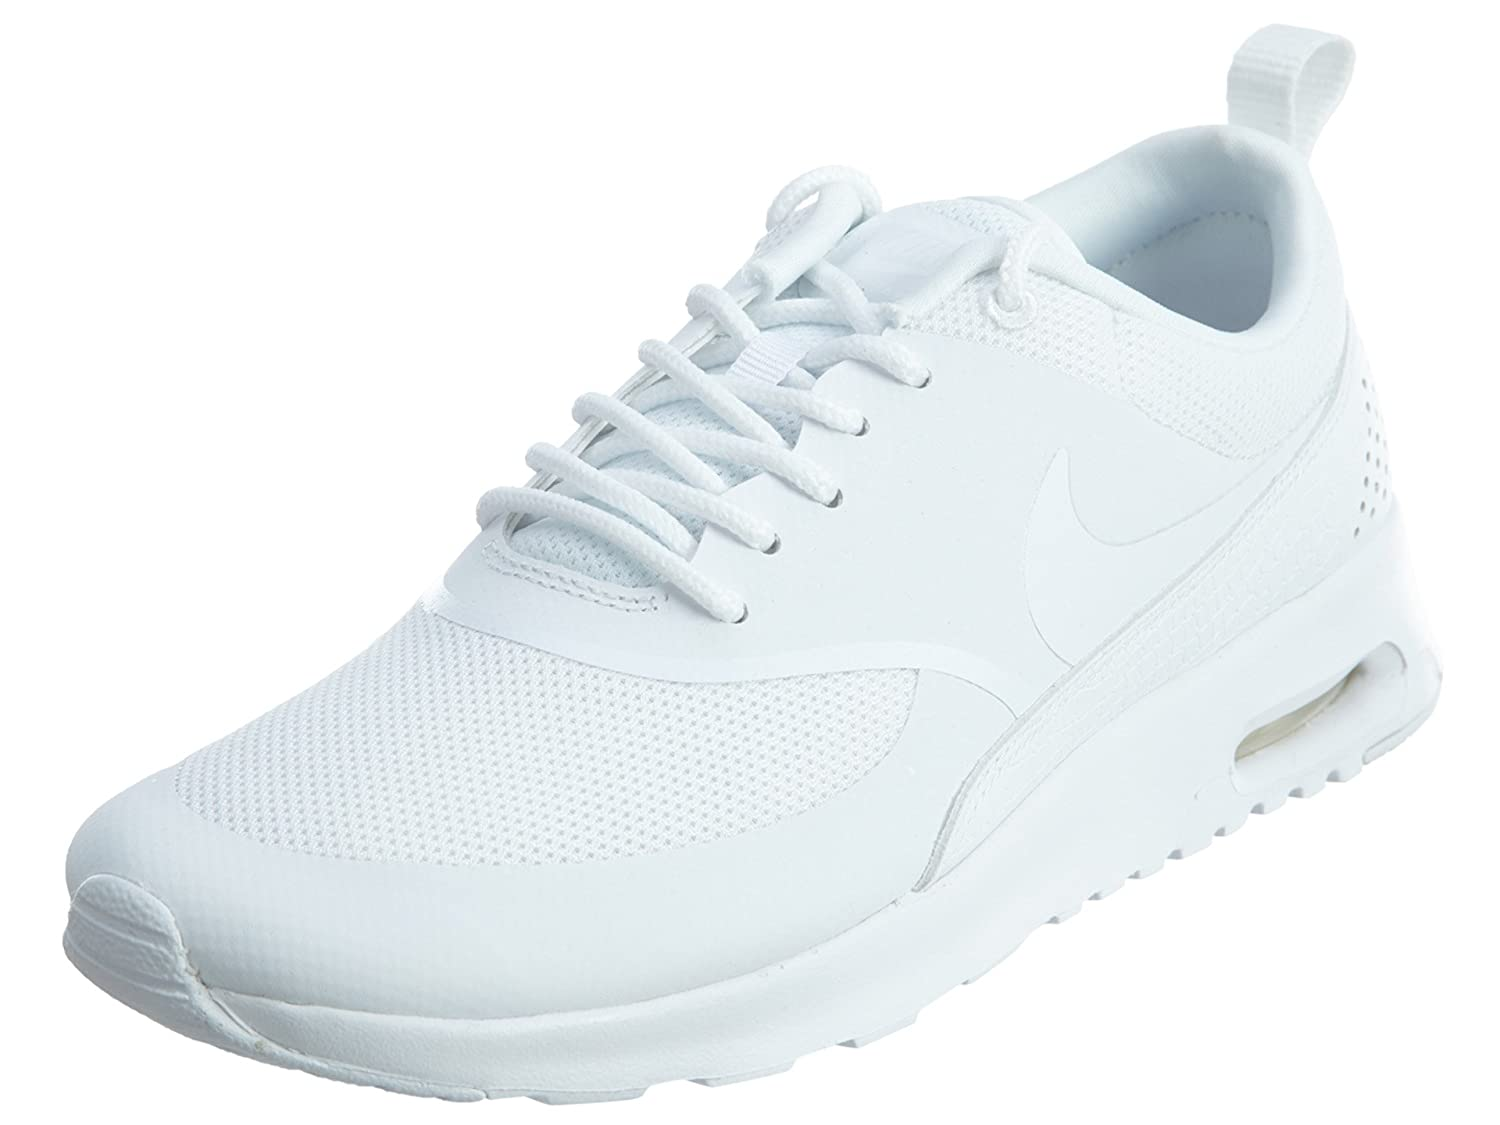 info for af094 d010e Amazon.com   NIKE Air Max Thea Womens Style   599409-104 Size   11.5 M Us    Flats